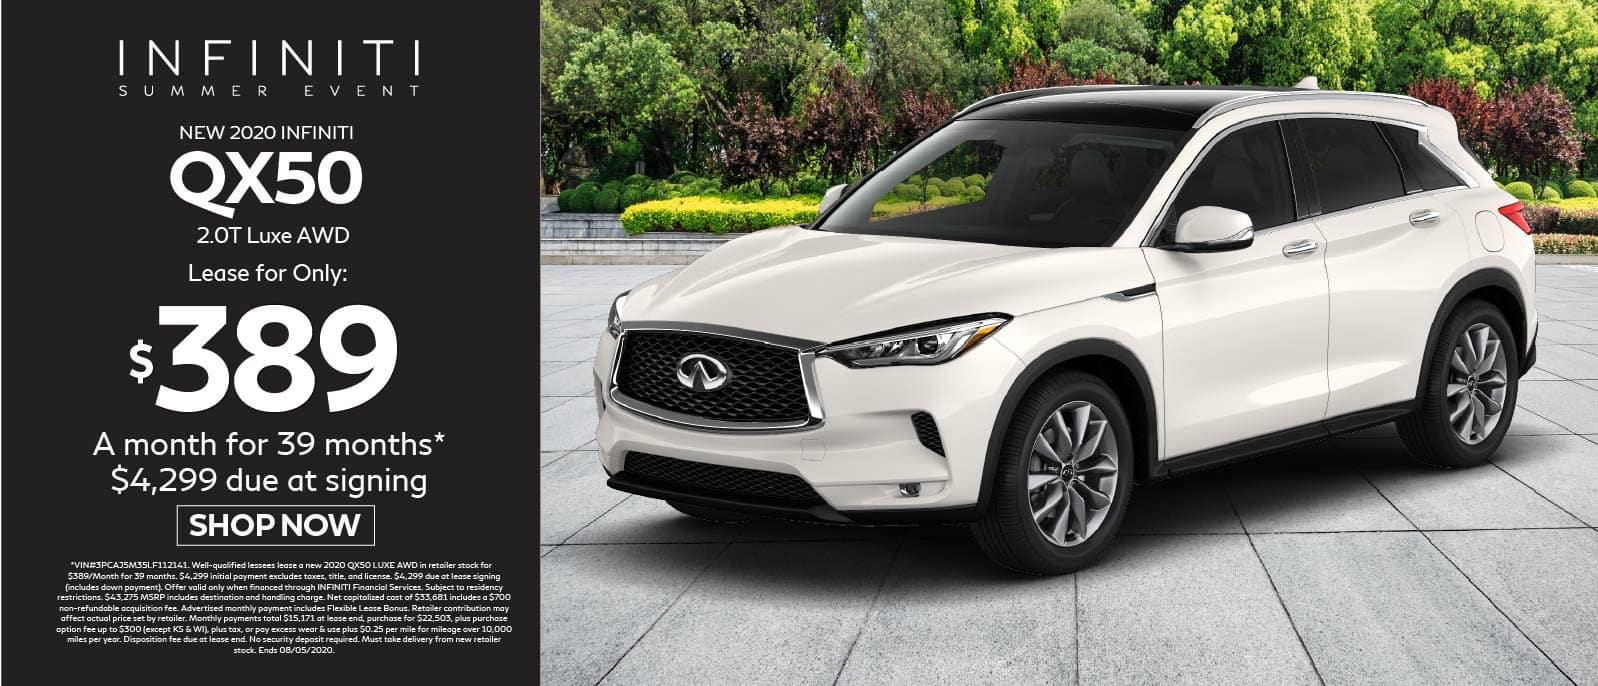 2020 INFINITI QX50 2.0T Luxe AWD Lease for $389 for 39 months $4299 due at signing. Shop now.